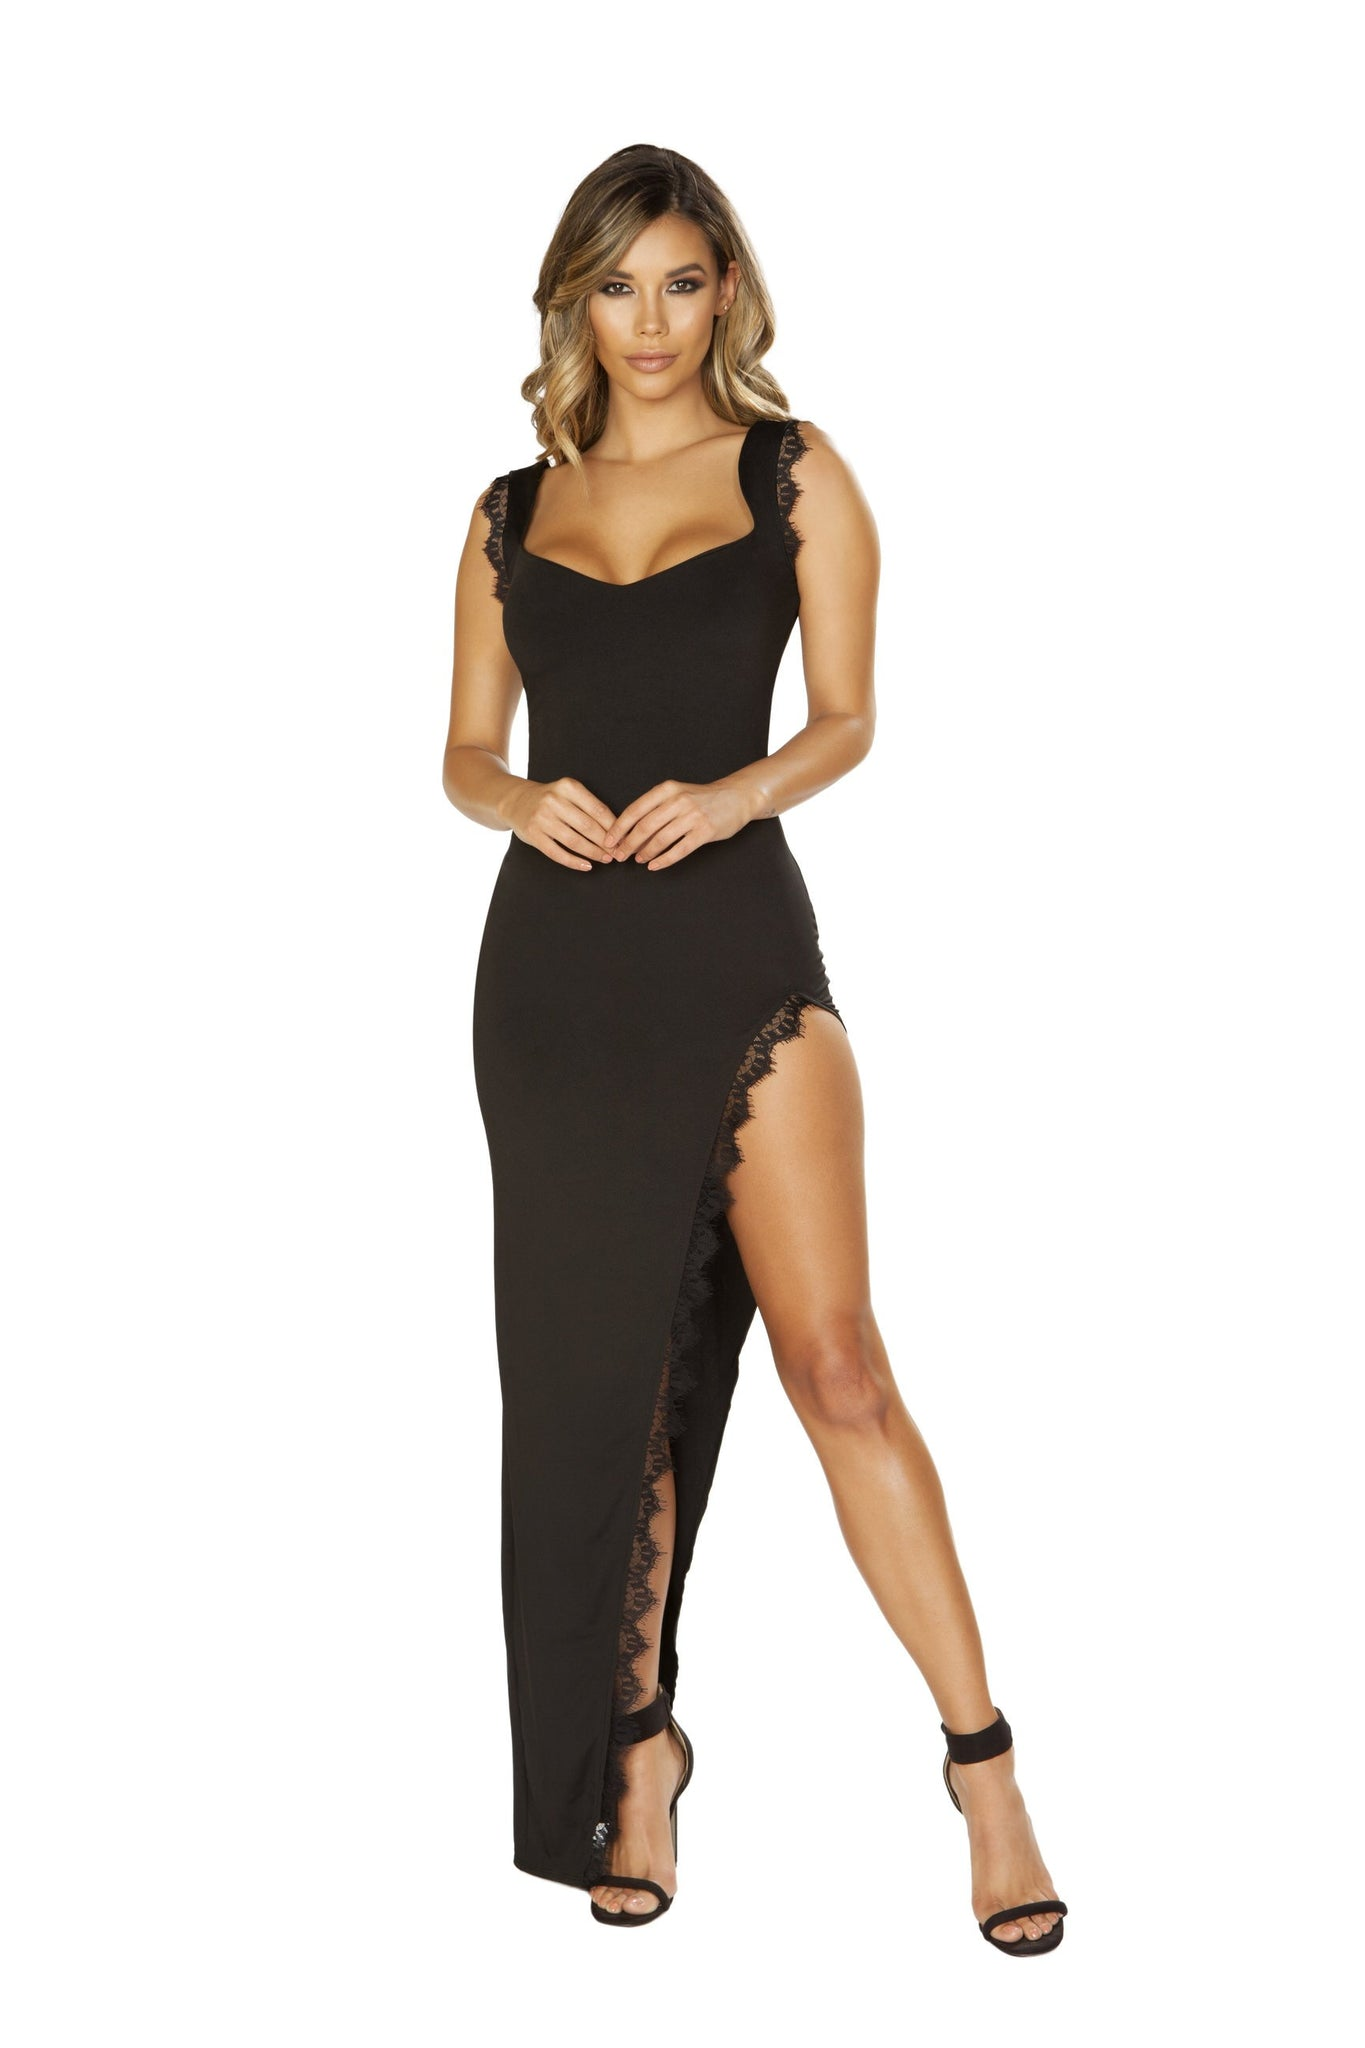 Maxi Length Dress with High Slit & Eyelash Lace Trim Detail